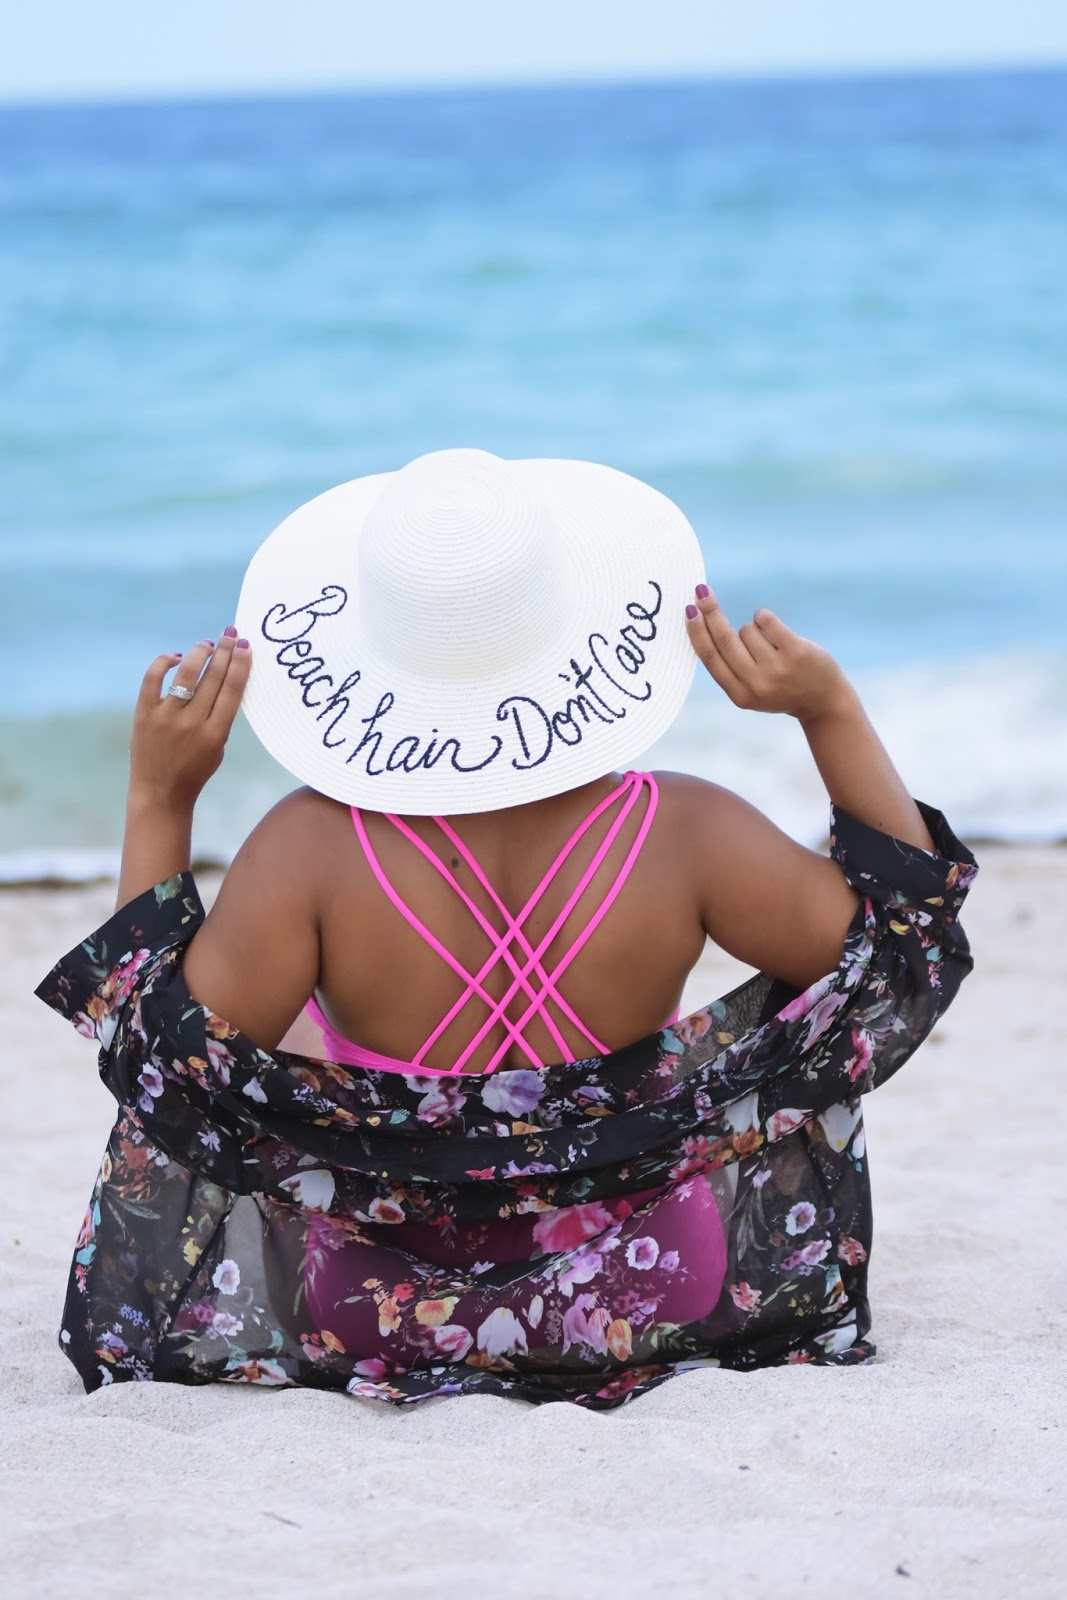 Beach, beach hat, beach hair, sand, beach outfit, miami beach, south beach, blue water, pink bathing suit, one piece swimsuit, floral kimono